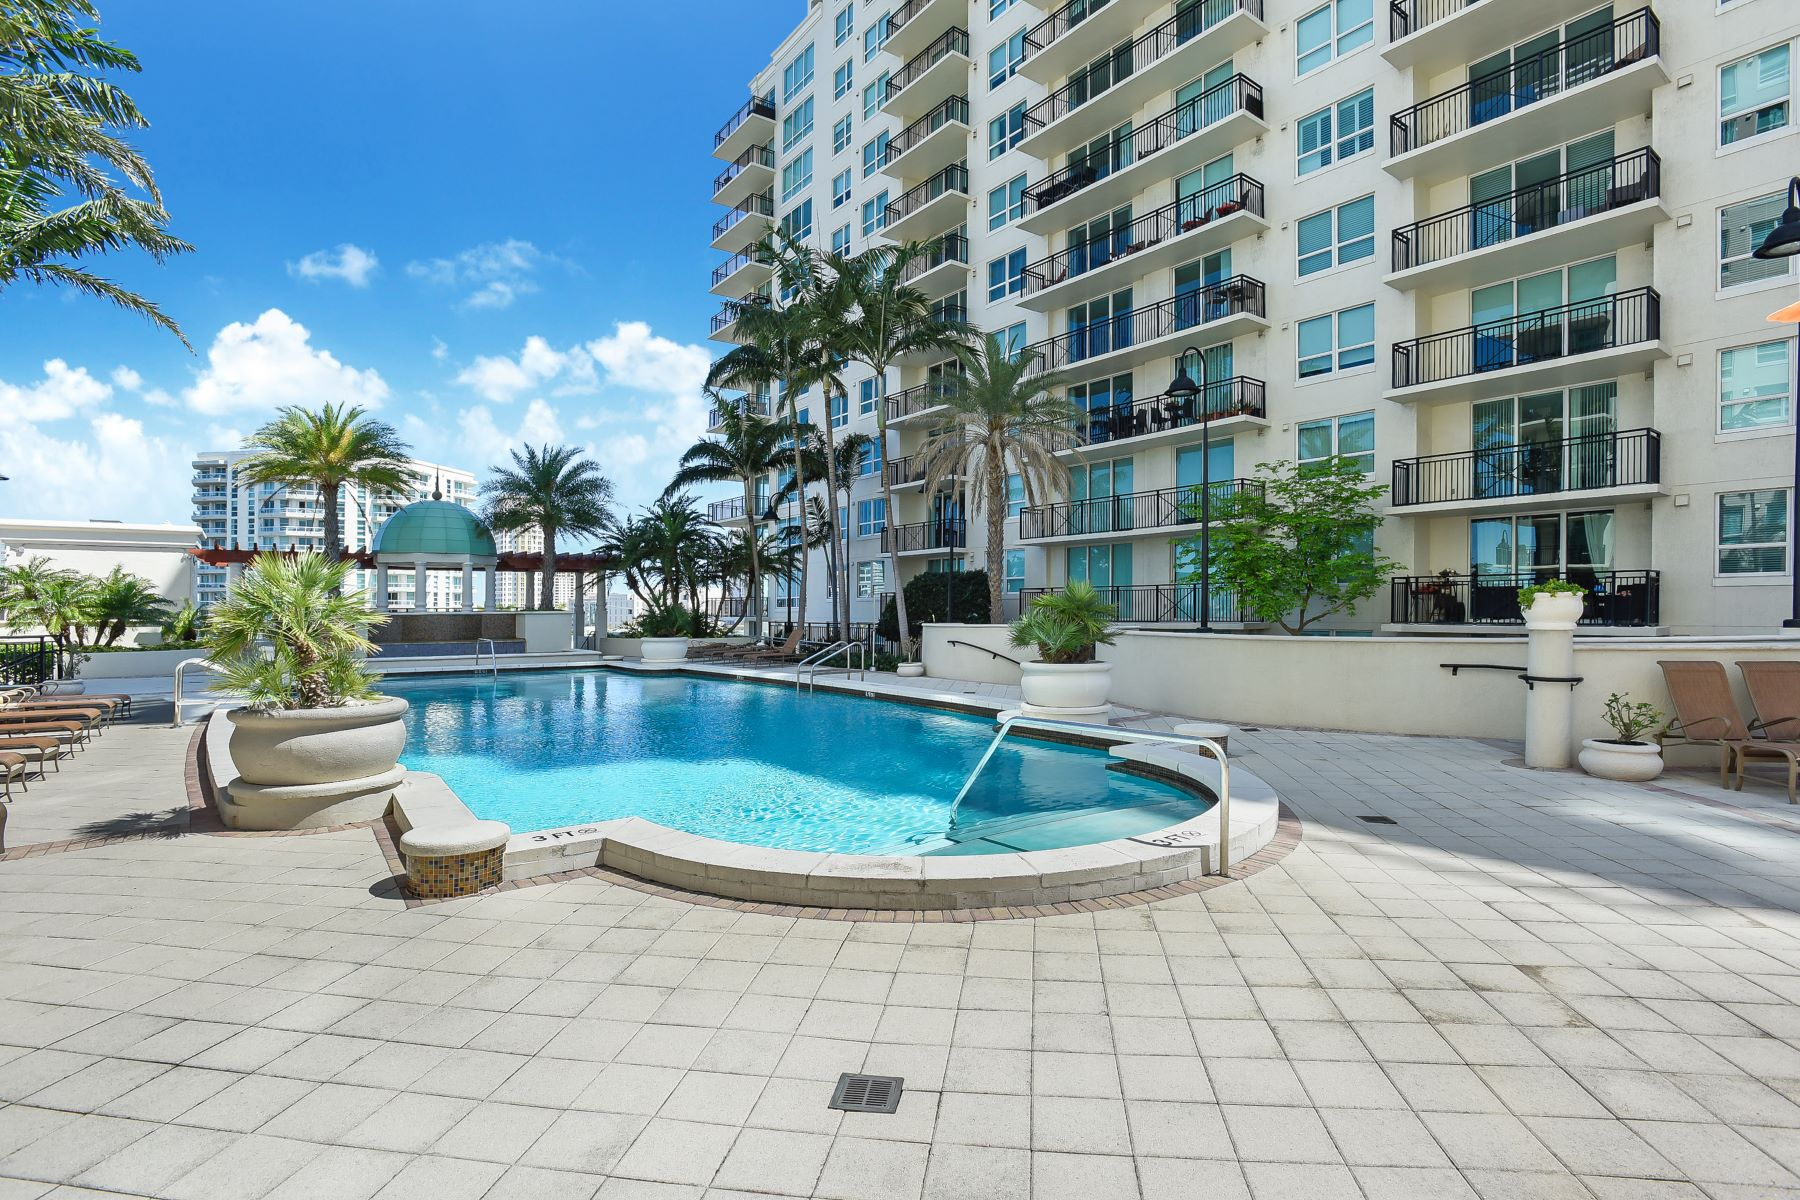 Condominium for Rent at 600 W Las Olas Blvd 600 W Las Olas Blvd 1801S Fort Lauderdale, Florida 33312 United States